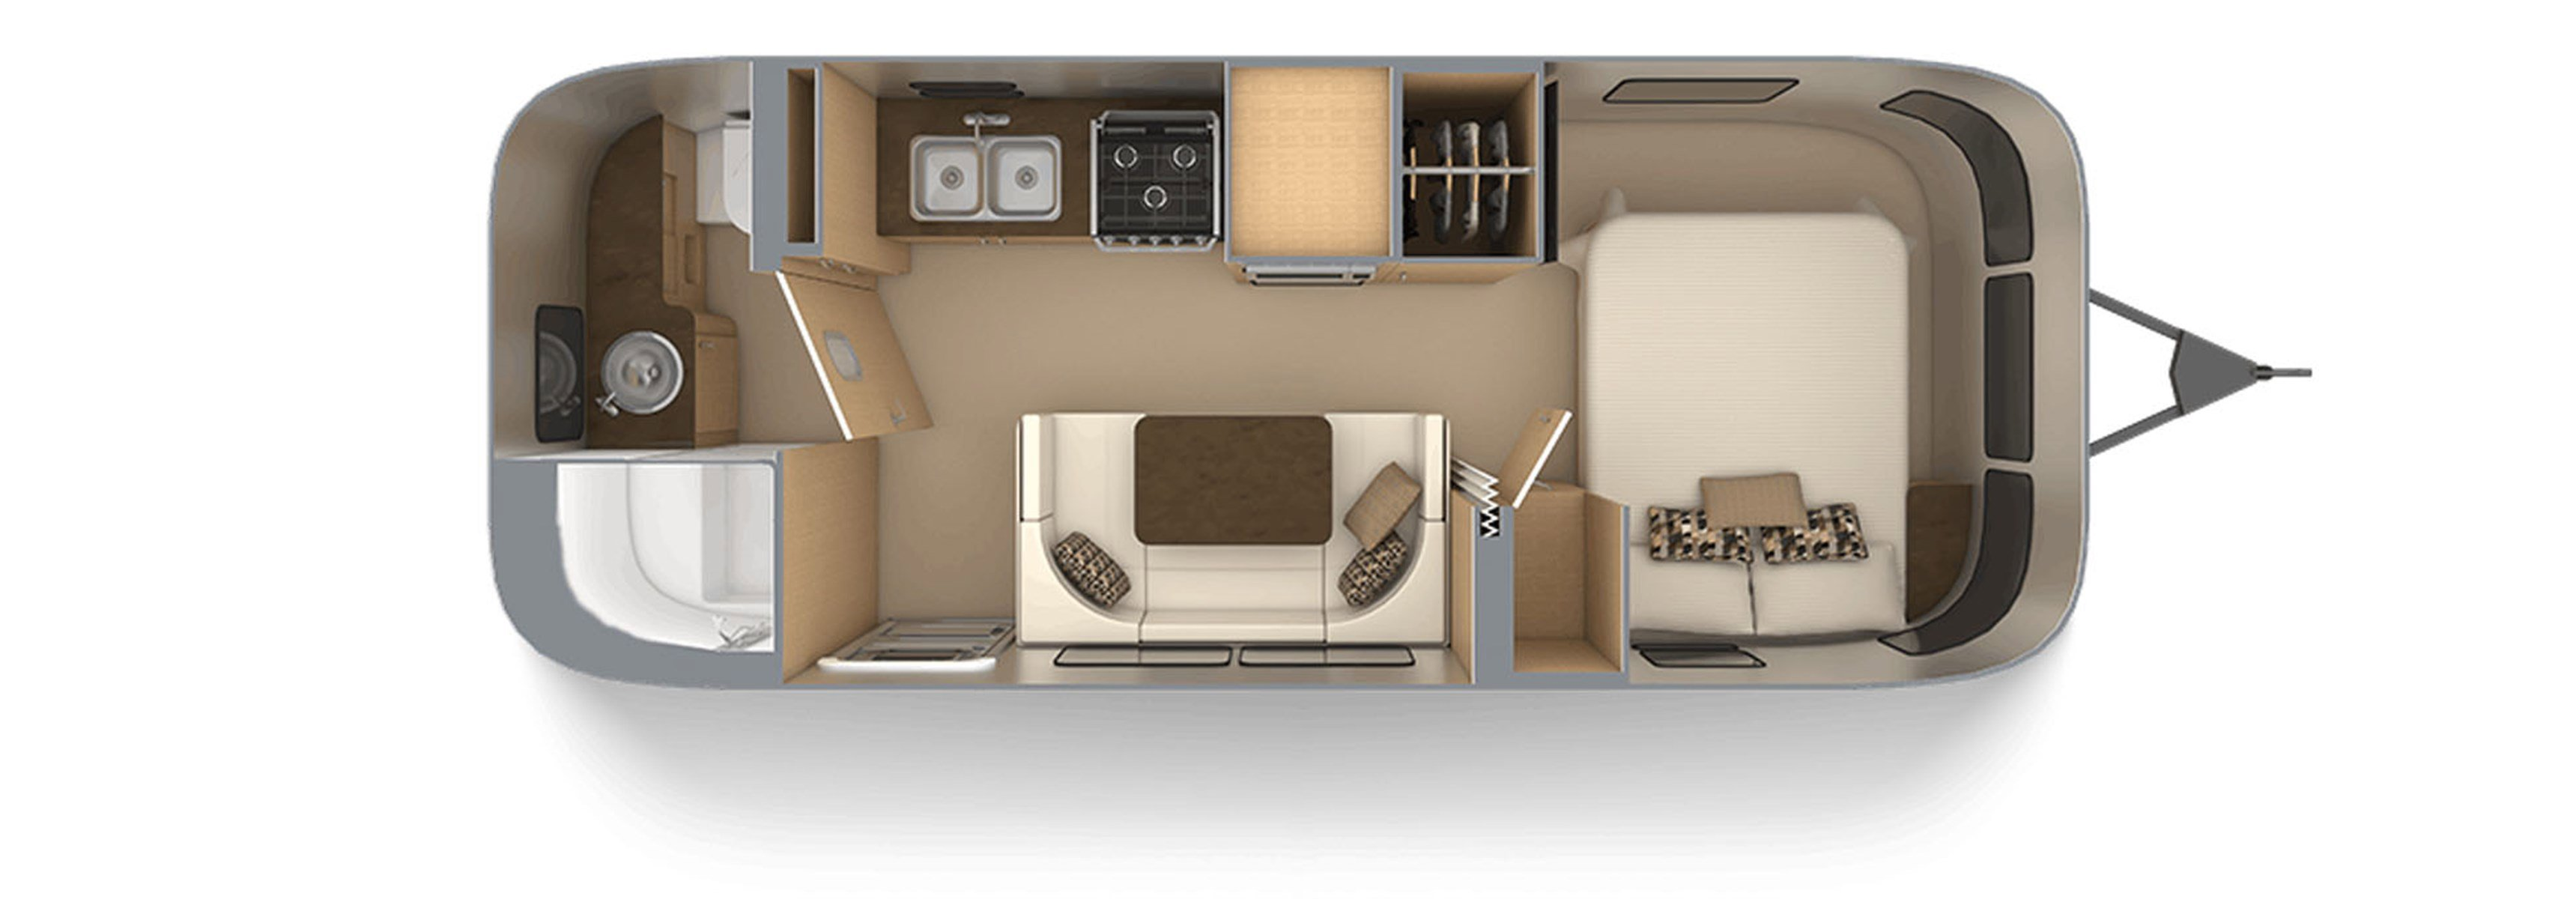 2020_airstream_globetrotter_floorplan